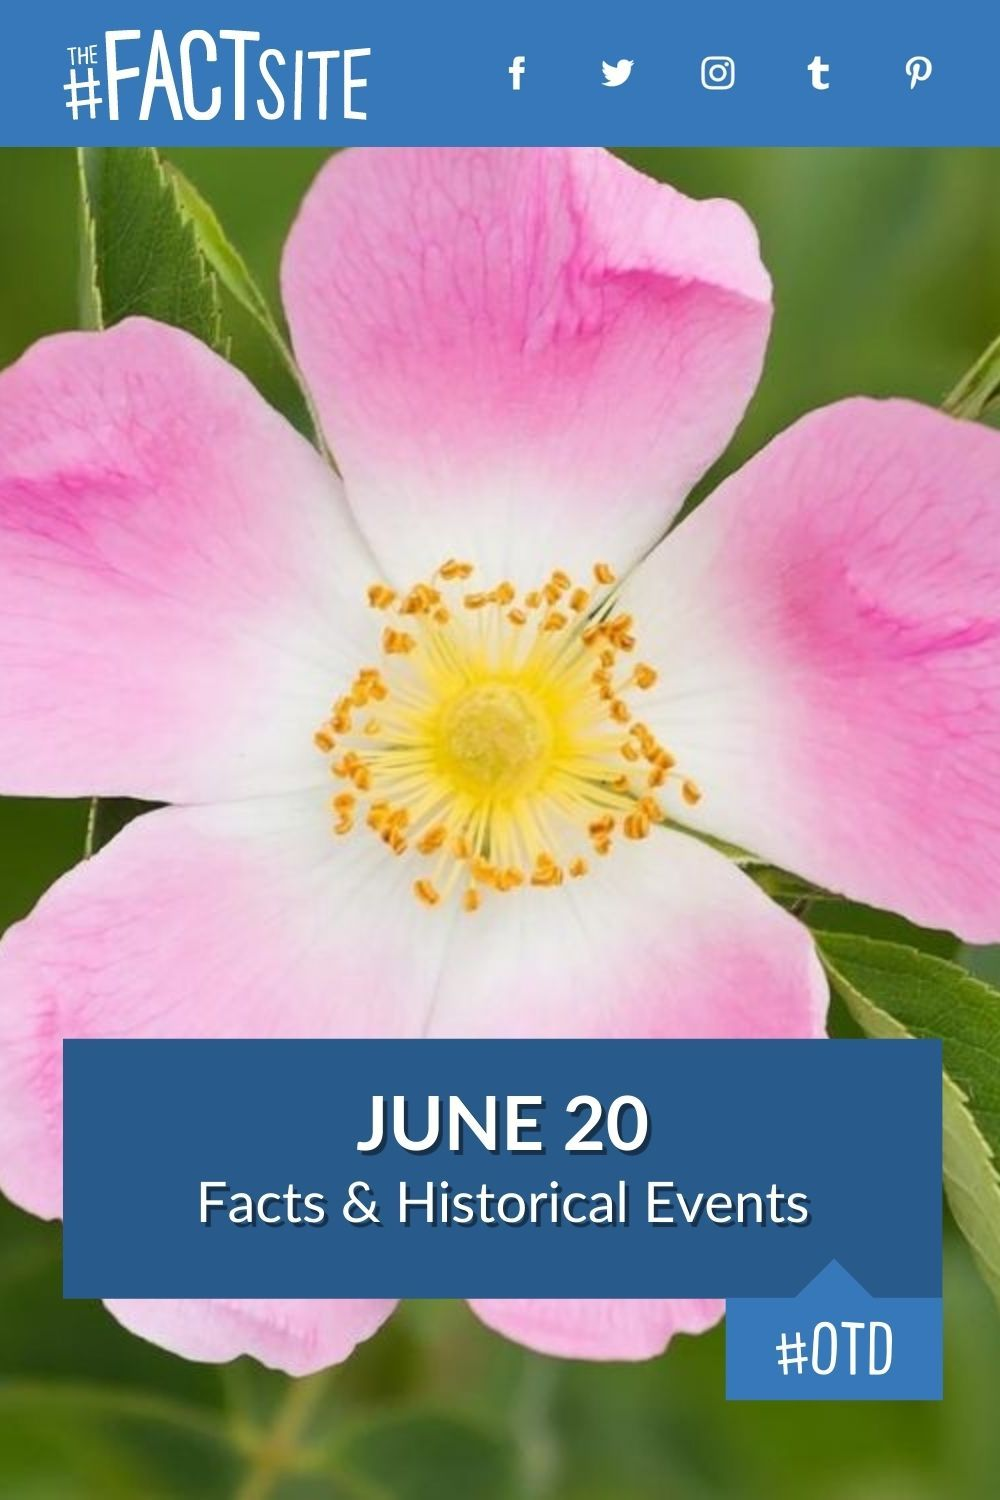 Facts & Historic Events That Happened on June 20